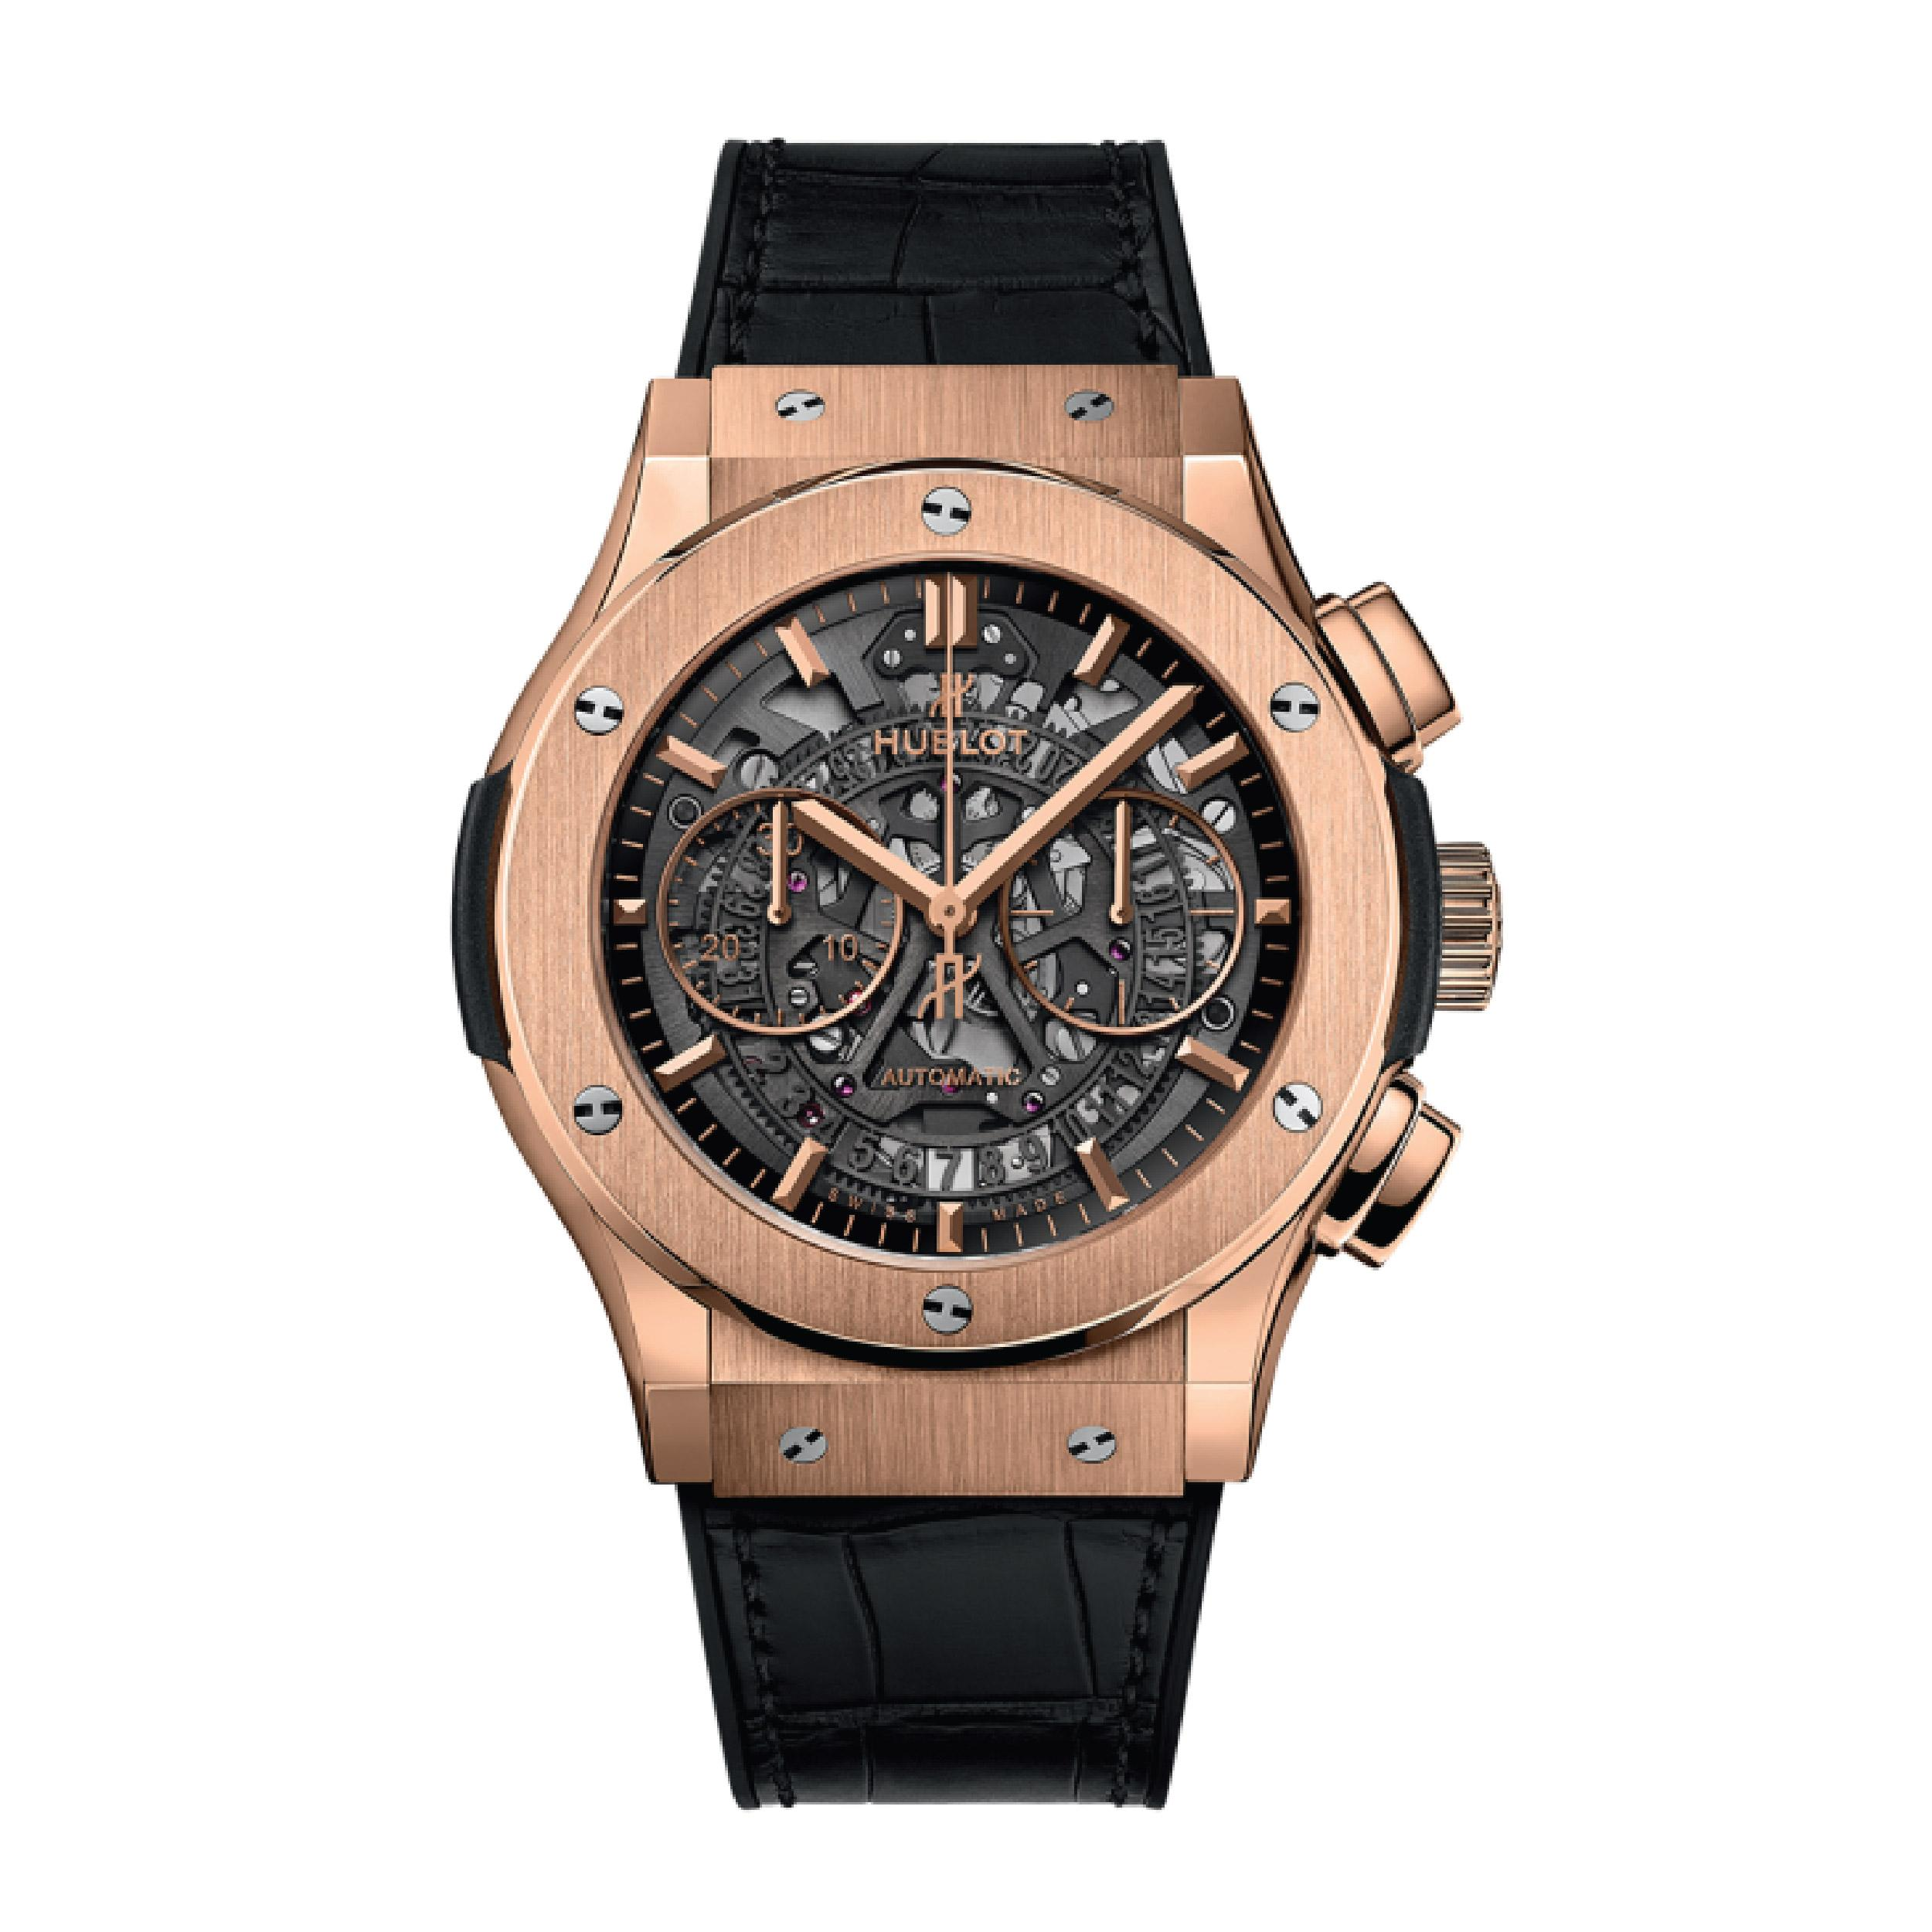 Hublot Часы CLASSIC FUSION AEROFUSION KING GOLD 45 mm